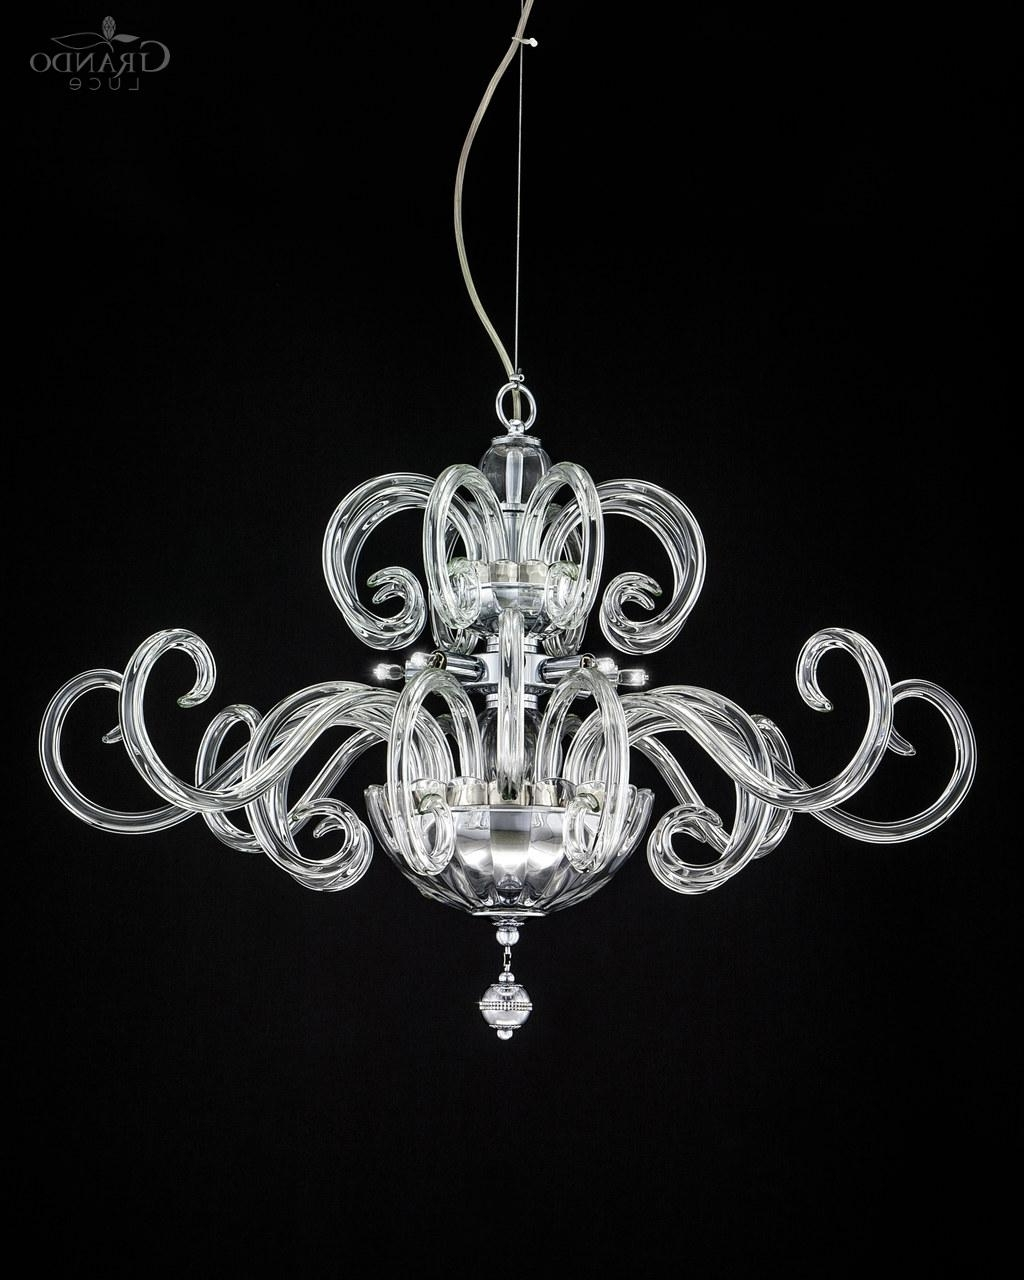 Most Current Crystal Chrome Chandeliers For 119/sm Chrome Modern Crystal Chandelier With Swarovski Elements (View 14 of 20)